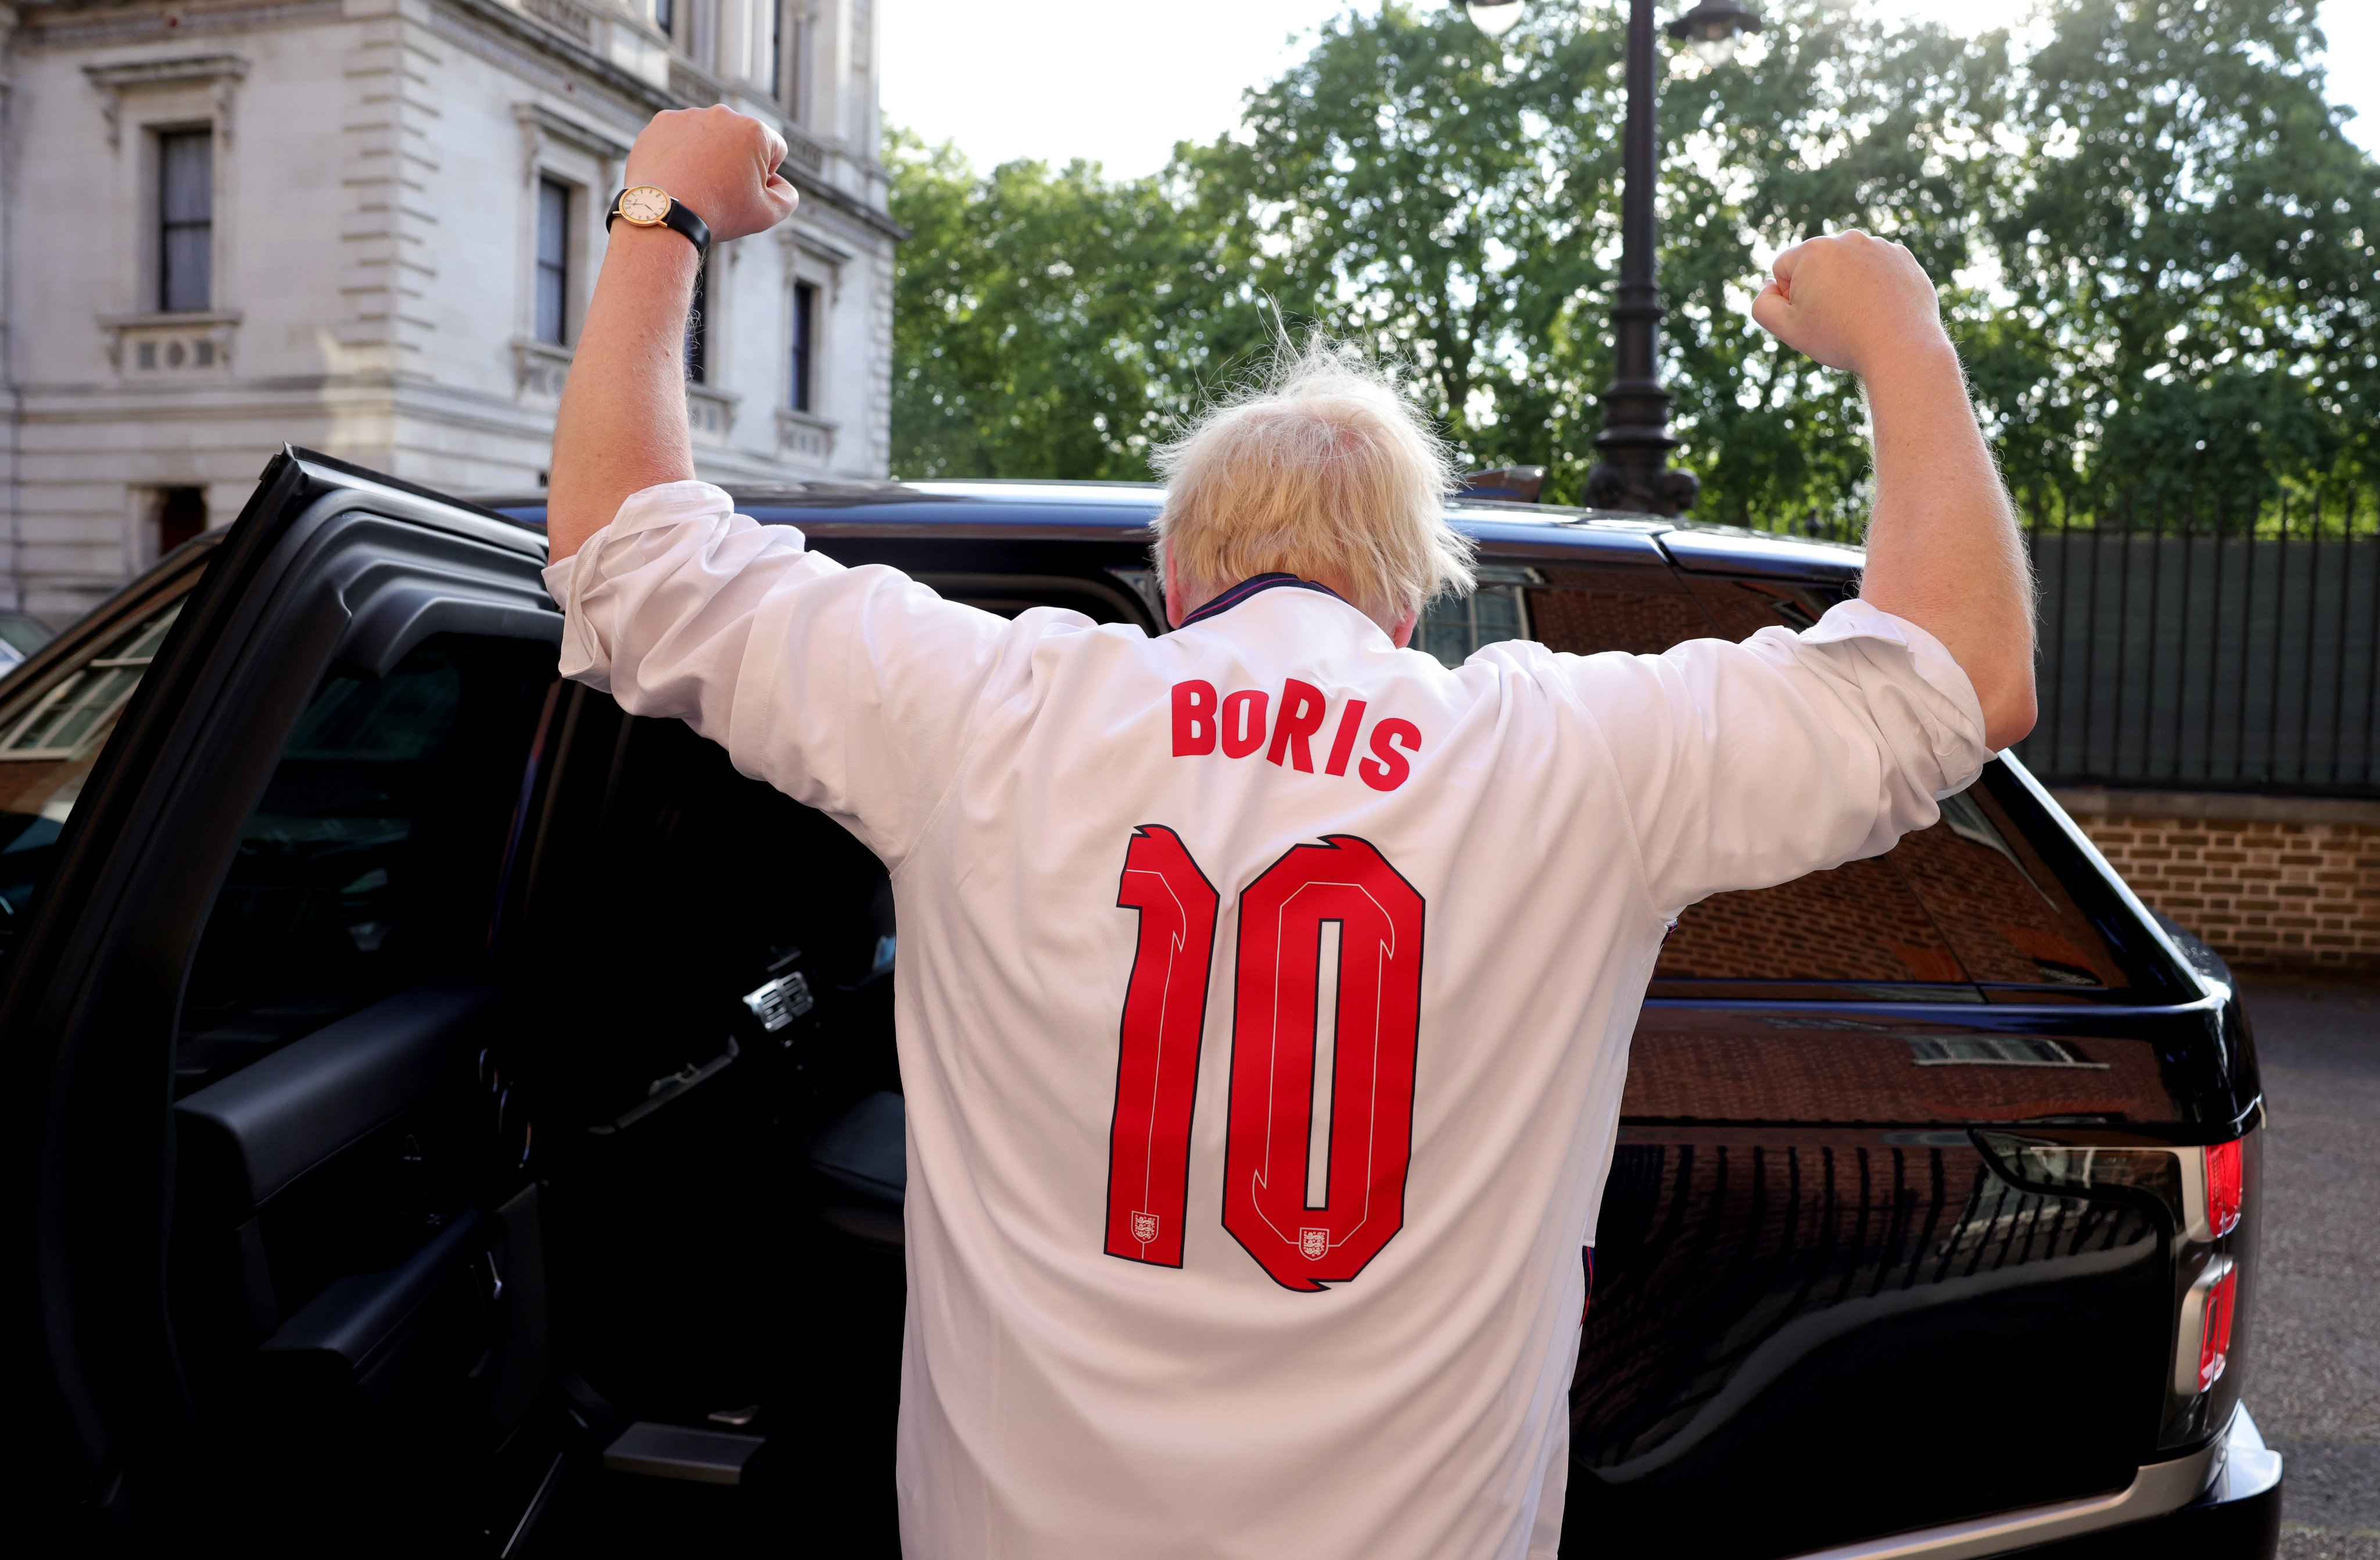 Prime Minister Boris Johnson leaves No10 Downing Street in his England shirt to watch England v Denmark in the semi-final of the Euro 2020 Championships.